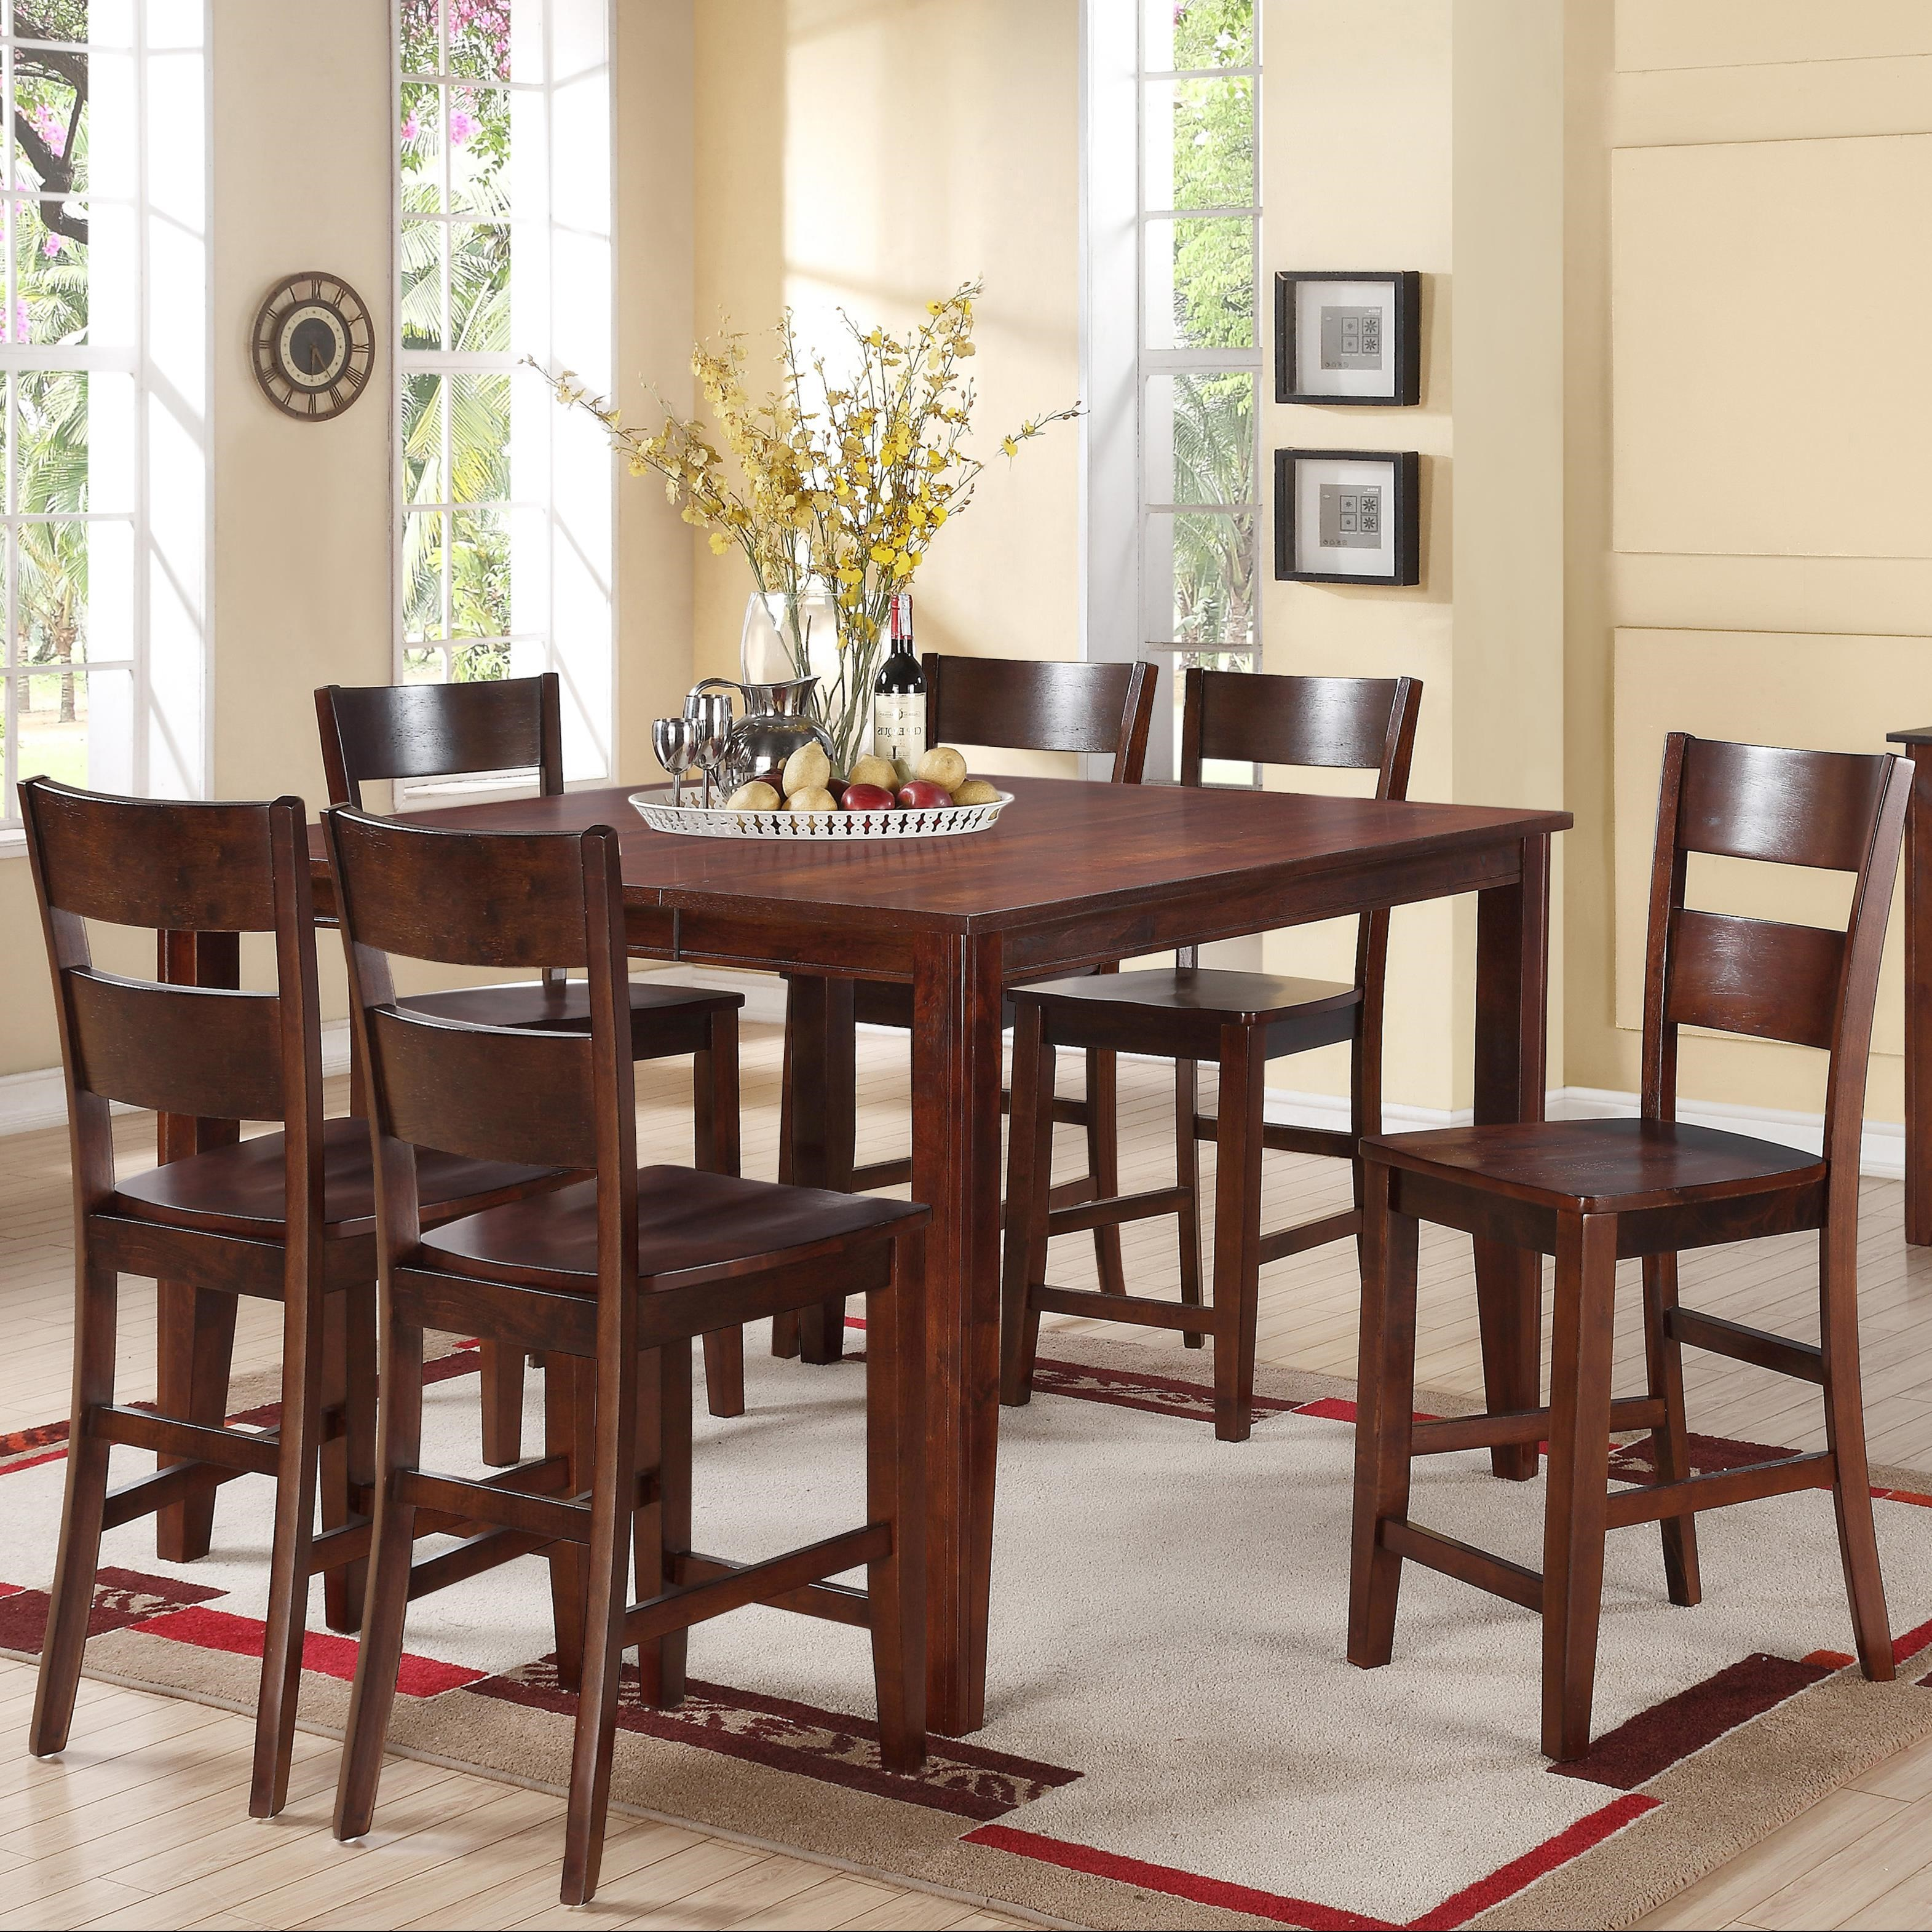 Delightful Holland House 82037 Piece Counter Height Dining Set ...